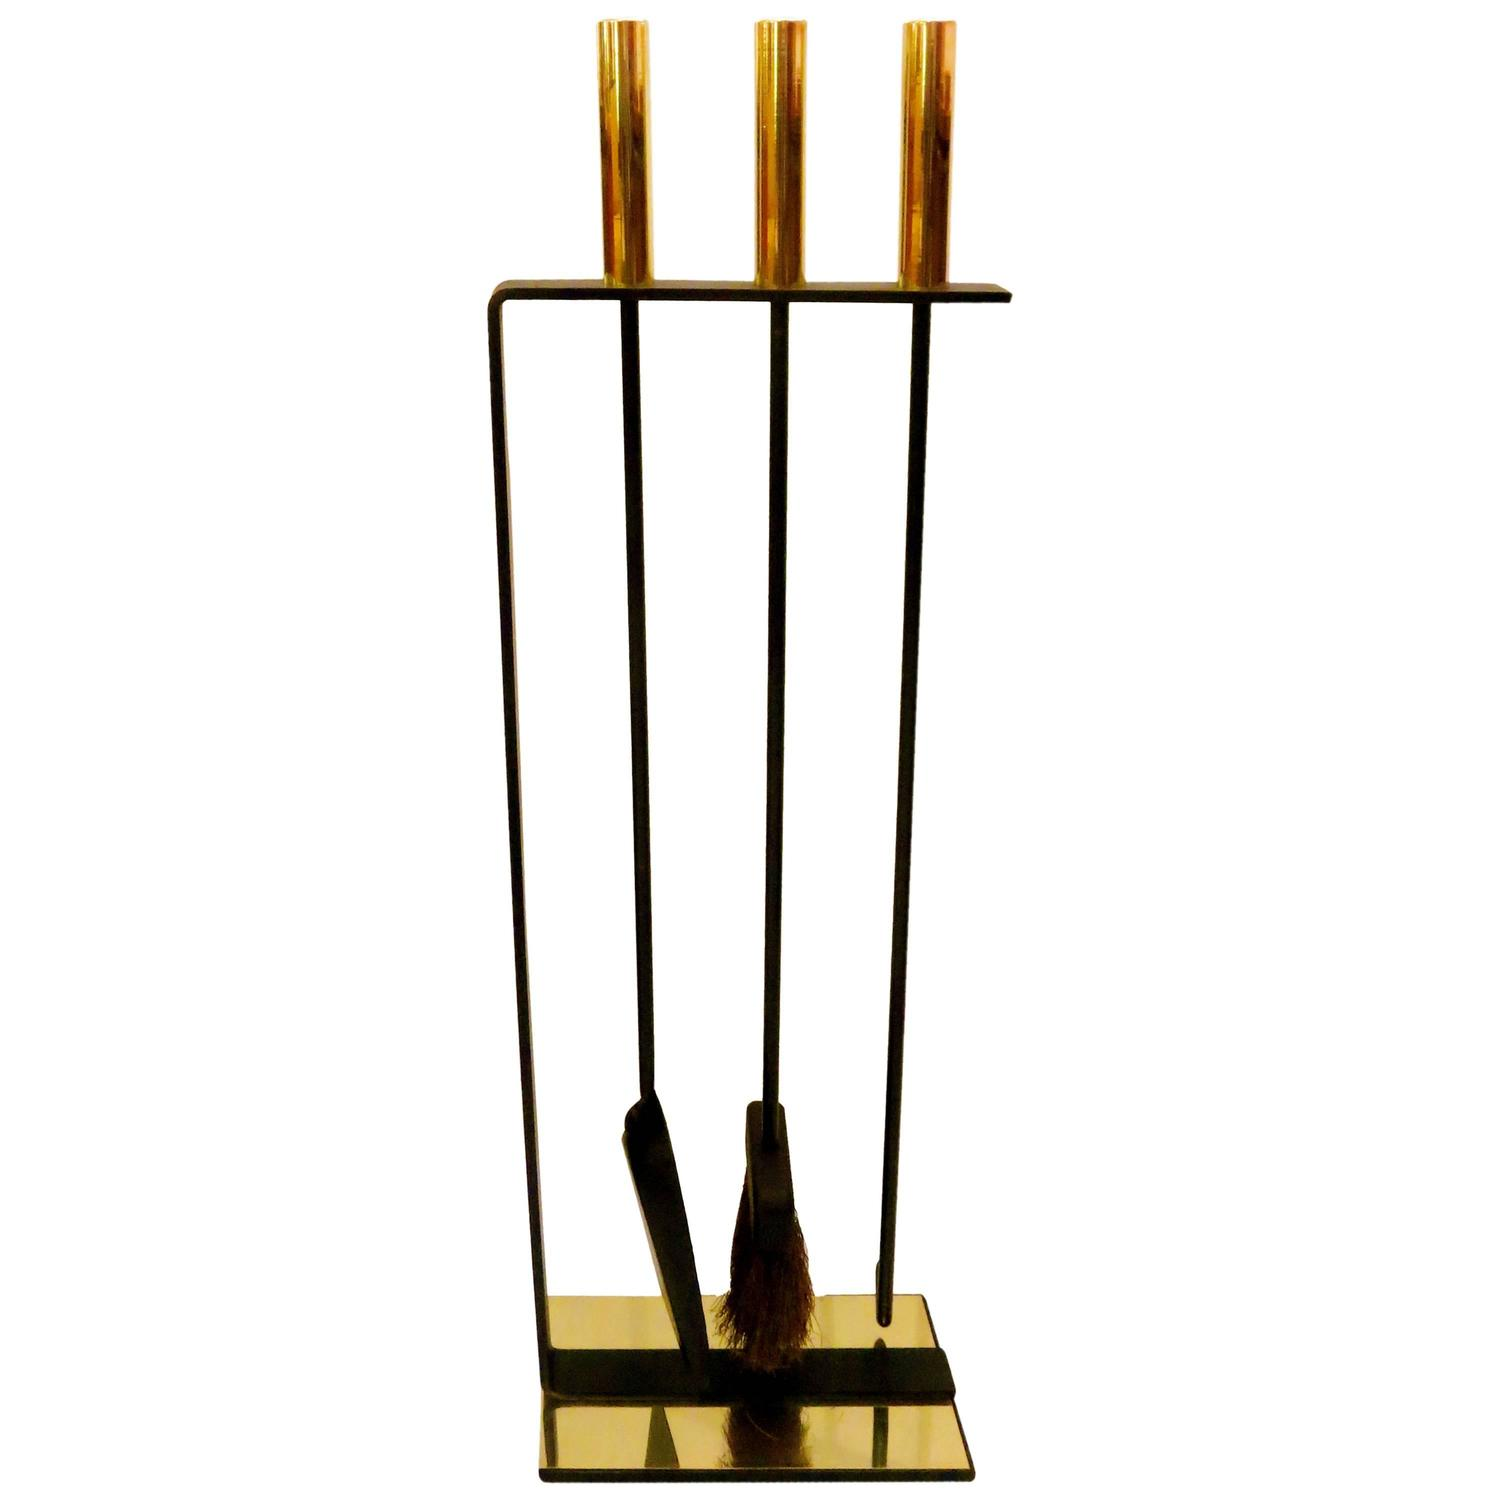 Mid Century American Modern Set Of Fireplace Tools By Pilgrim In Brass And Iron At 1stdibs